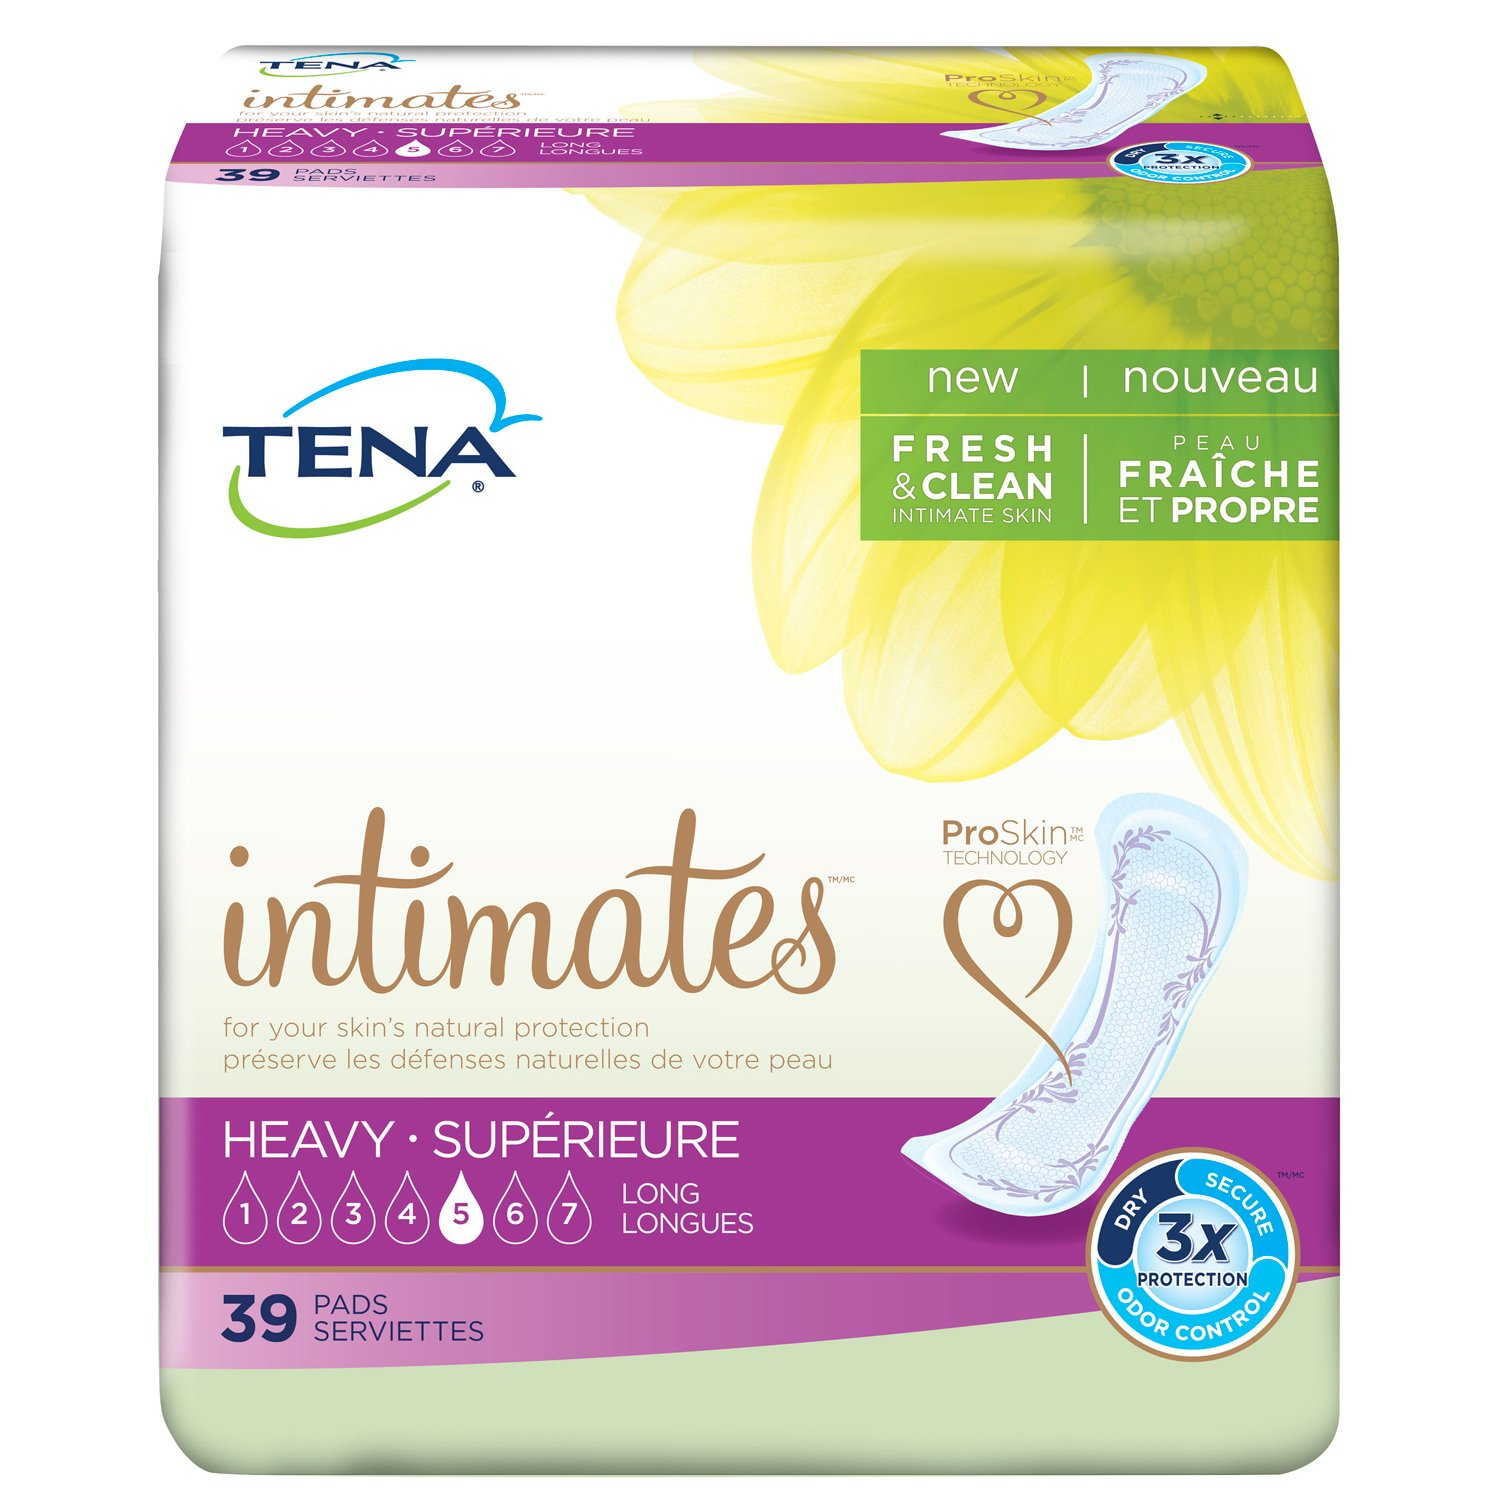 Tena Incontinence Pads for Women, Heavy, Long, 39 Count (Pack of 3) - (Packaging May Vary)